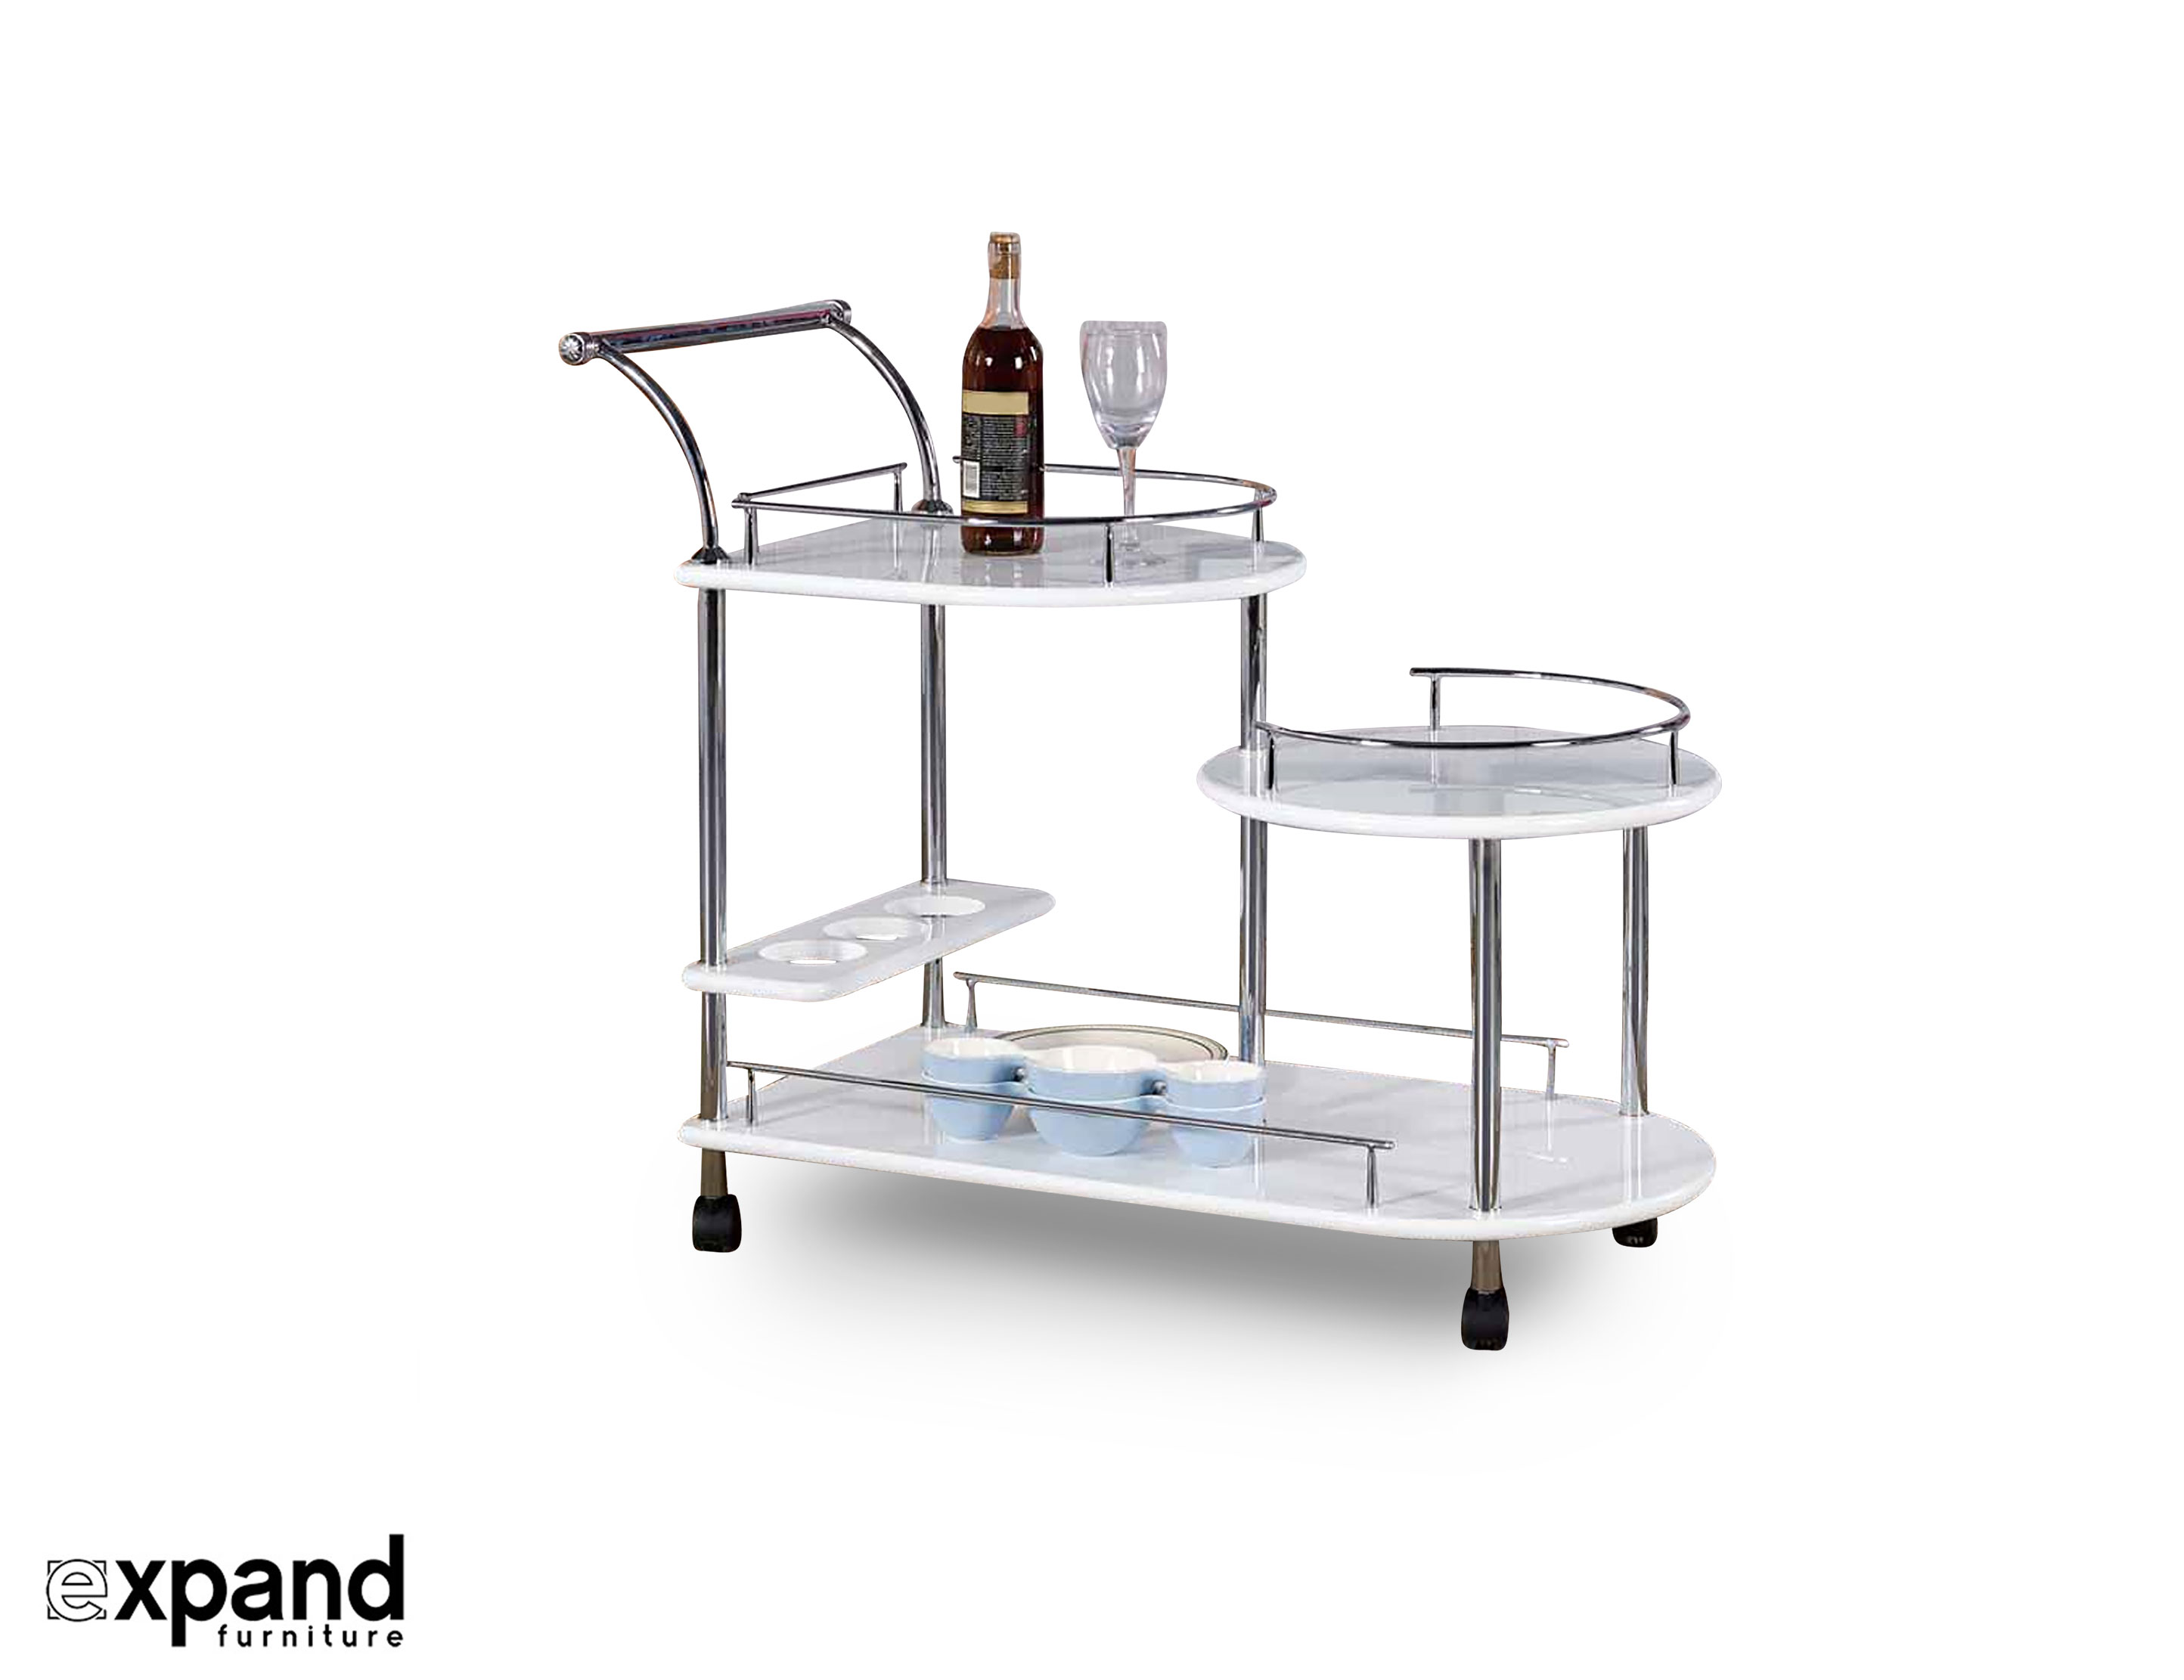 Step trolley multi height serving cart expand for Deco table multicolore